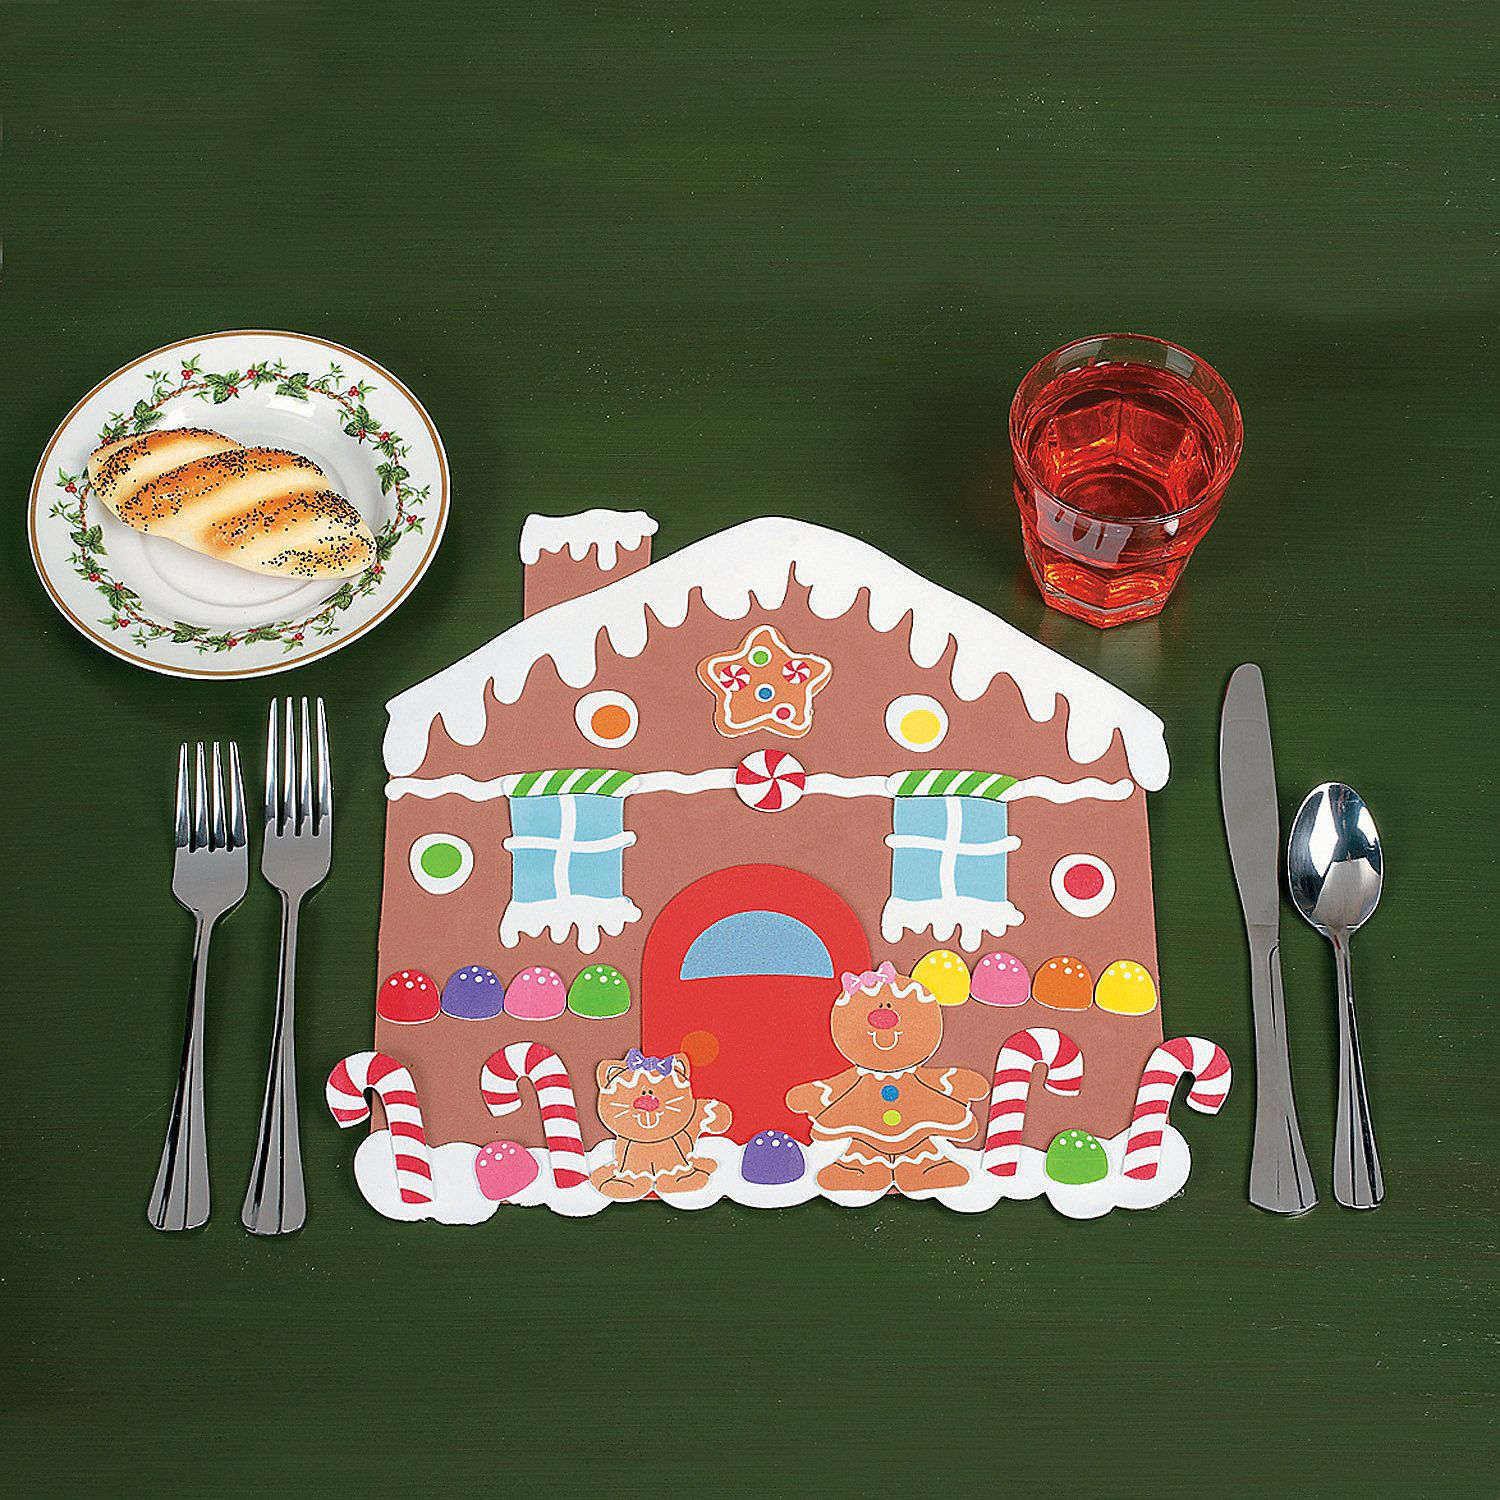 Diy Foam Gingerbread House Placemats Christmas Craft Kit Gingerbread Crafts Gingerbread House Craft